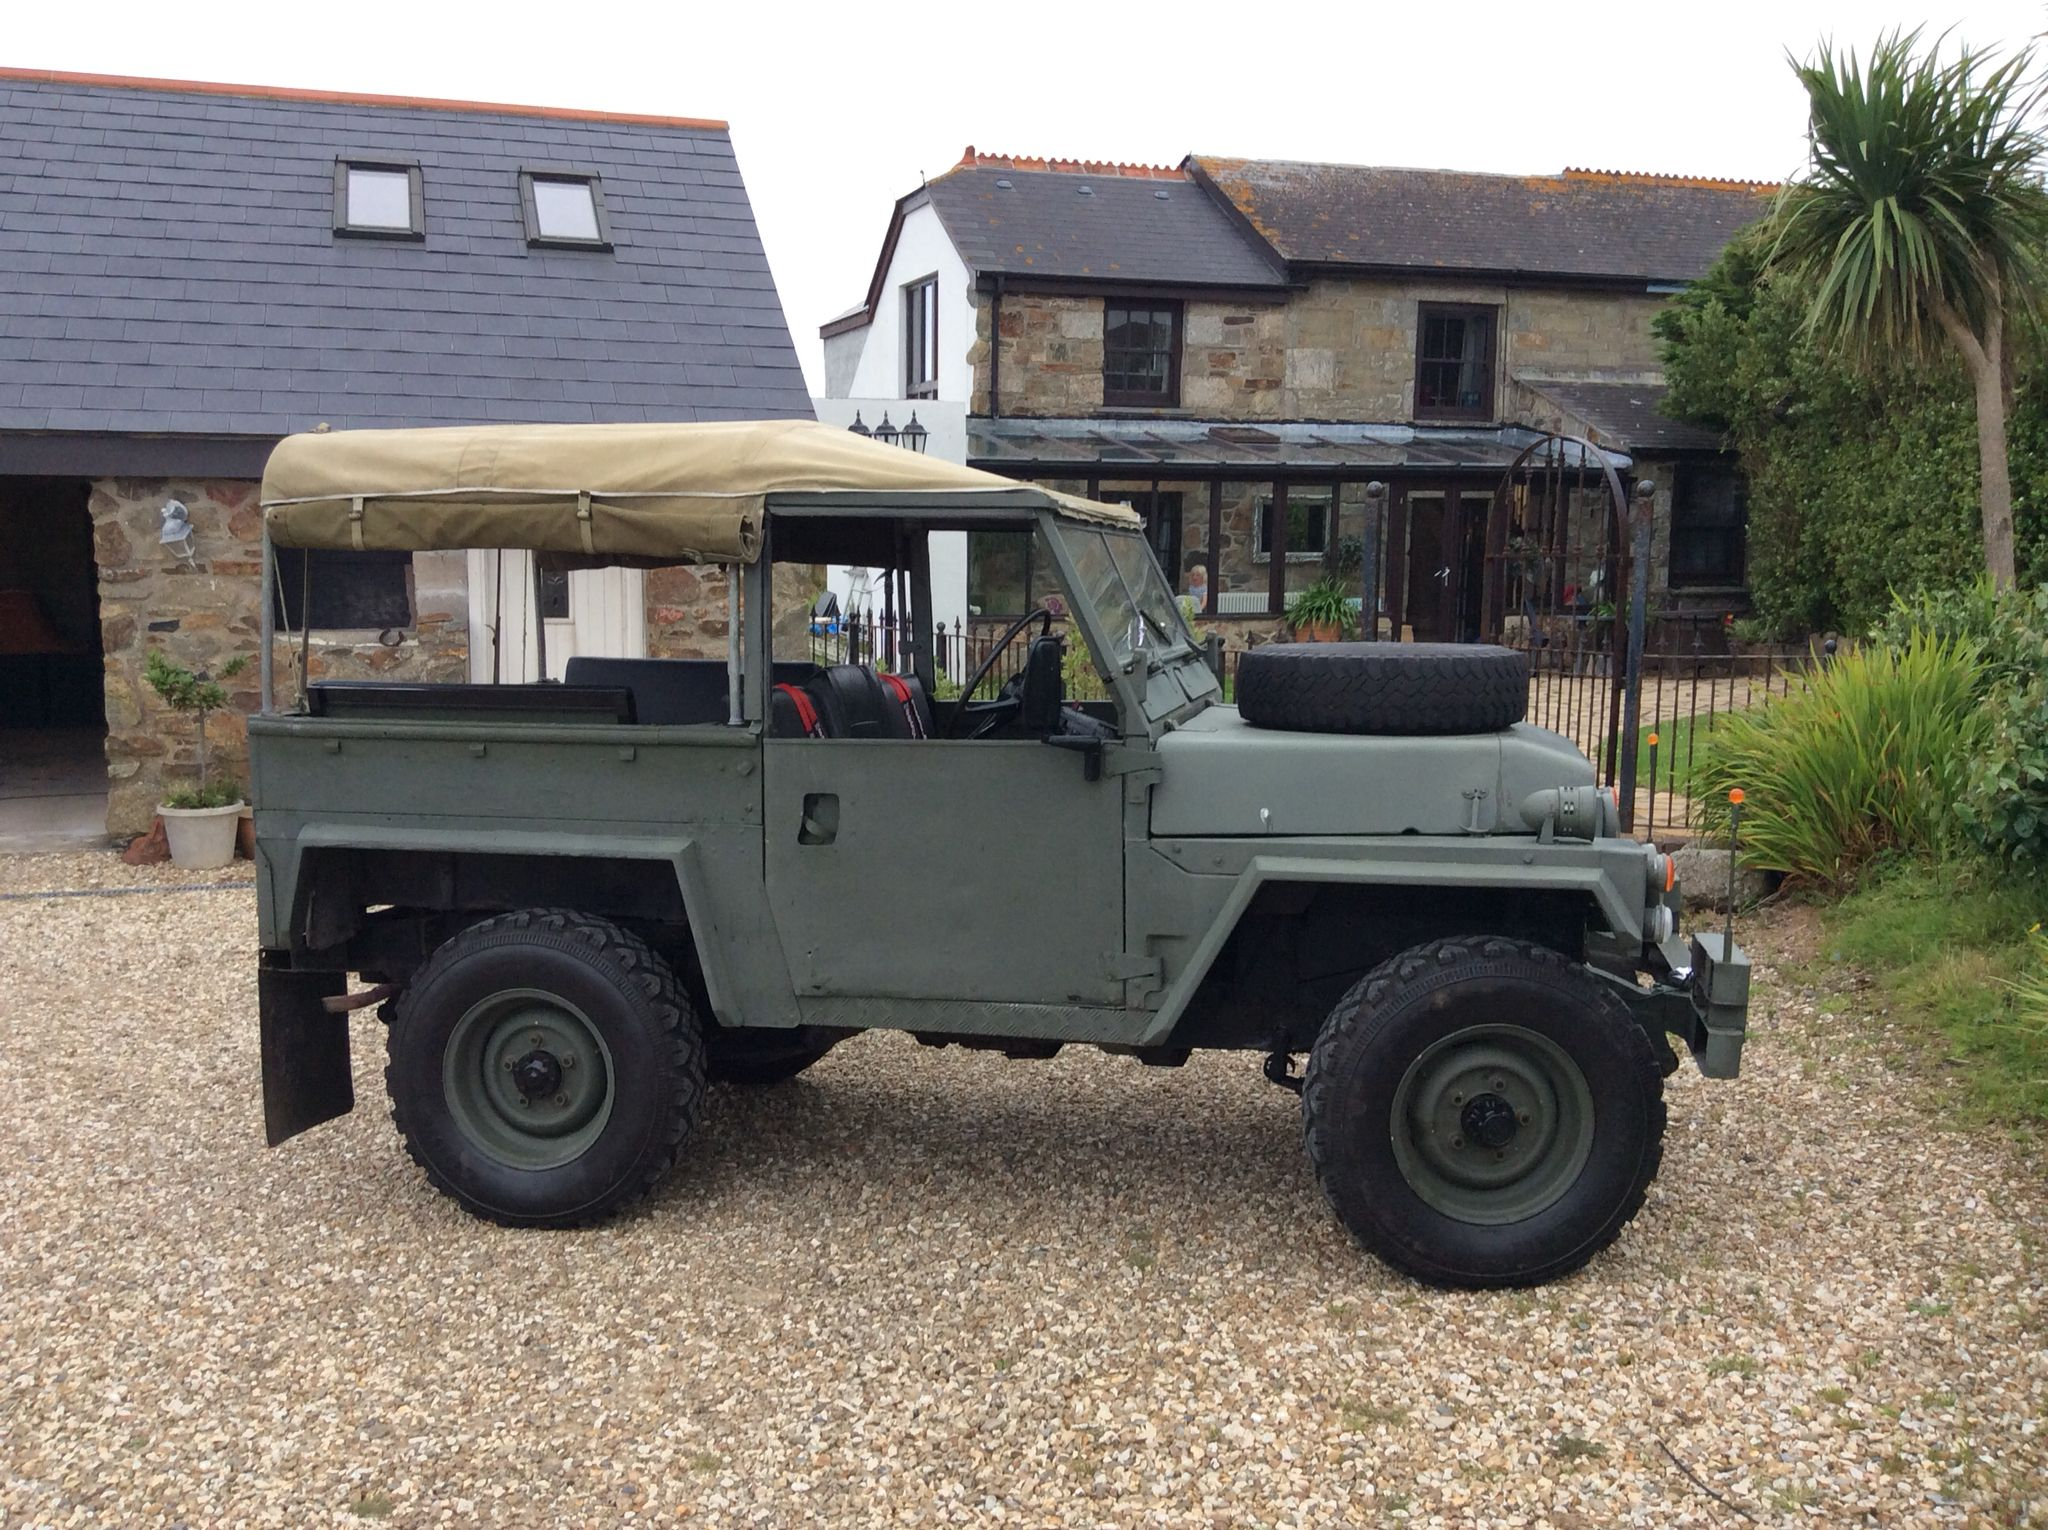 76 Lightweight Jeep Land Rover Series Land Rover Best 4x4